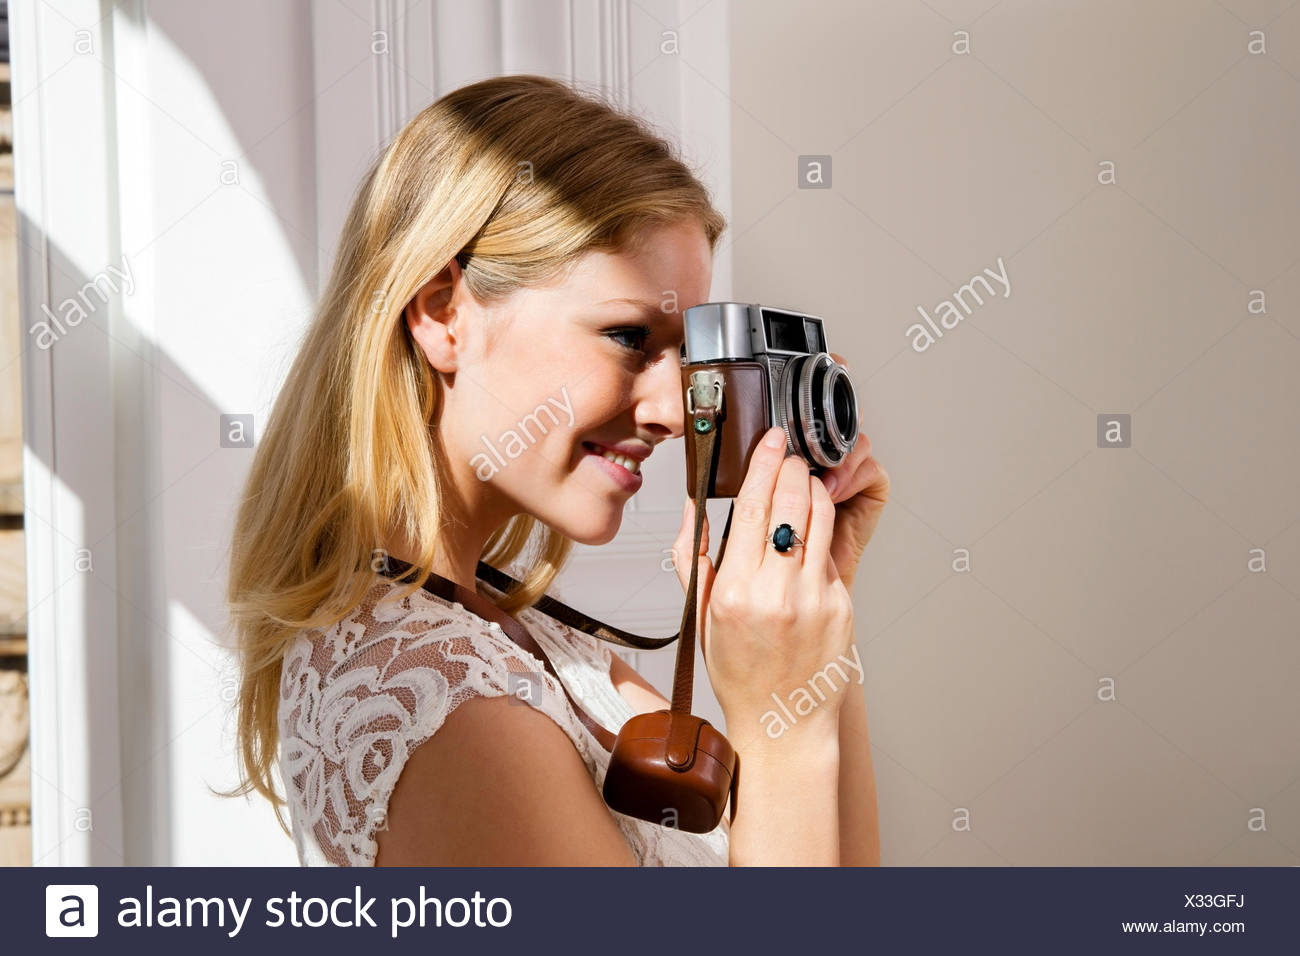 Smiling young woman taking picture with old camera - Stock Image